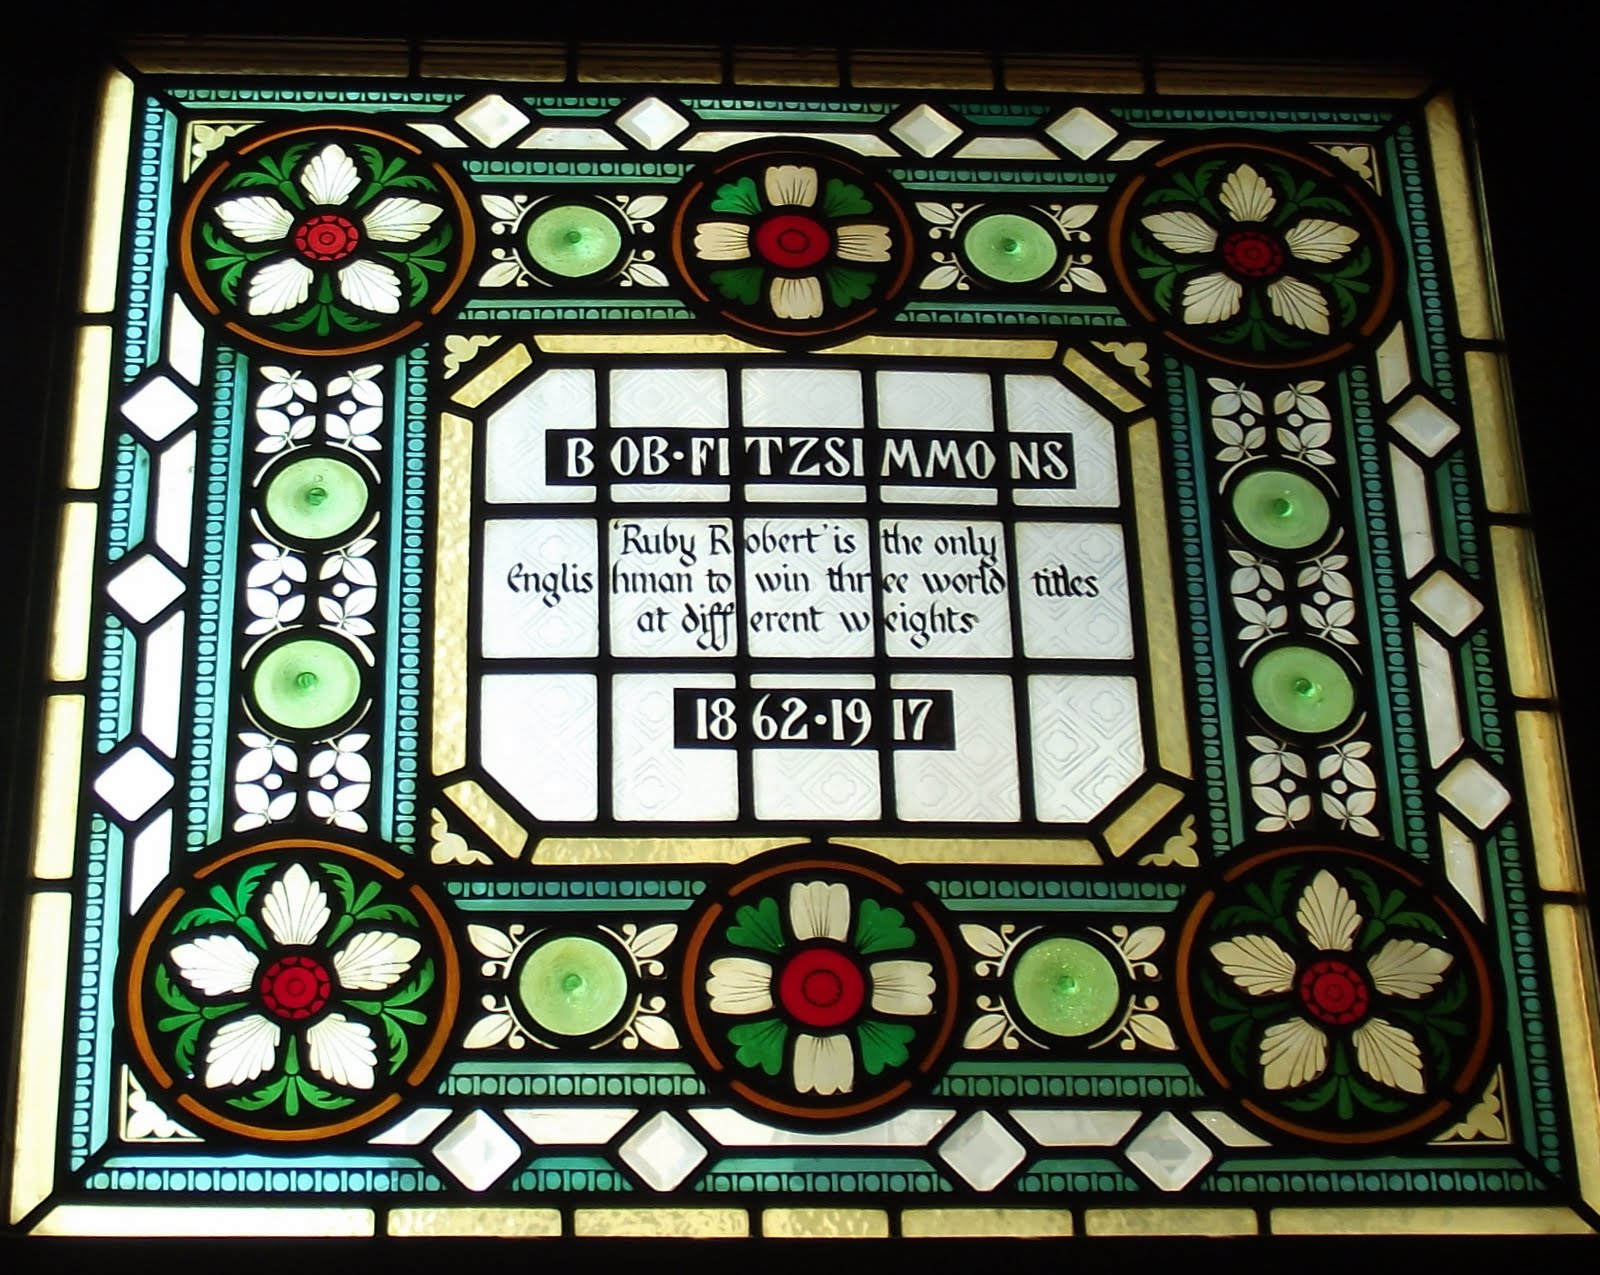 Bob Fitzsimmons stained glass at the Champion pub